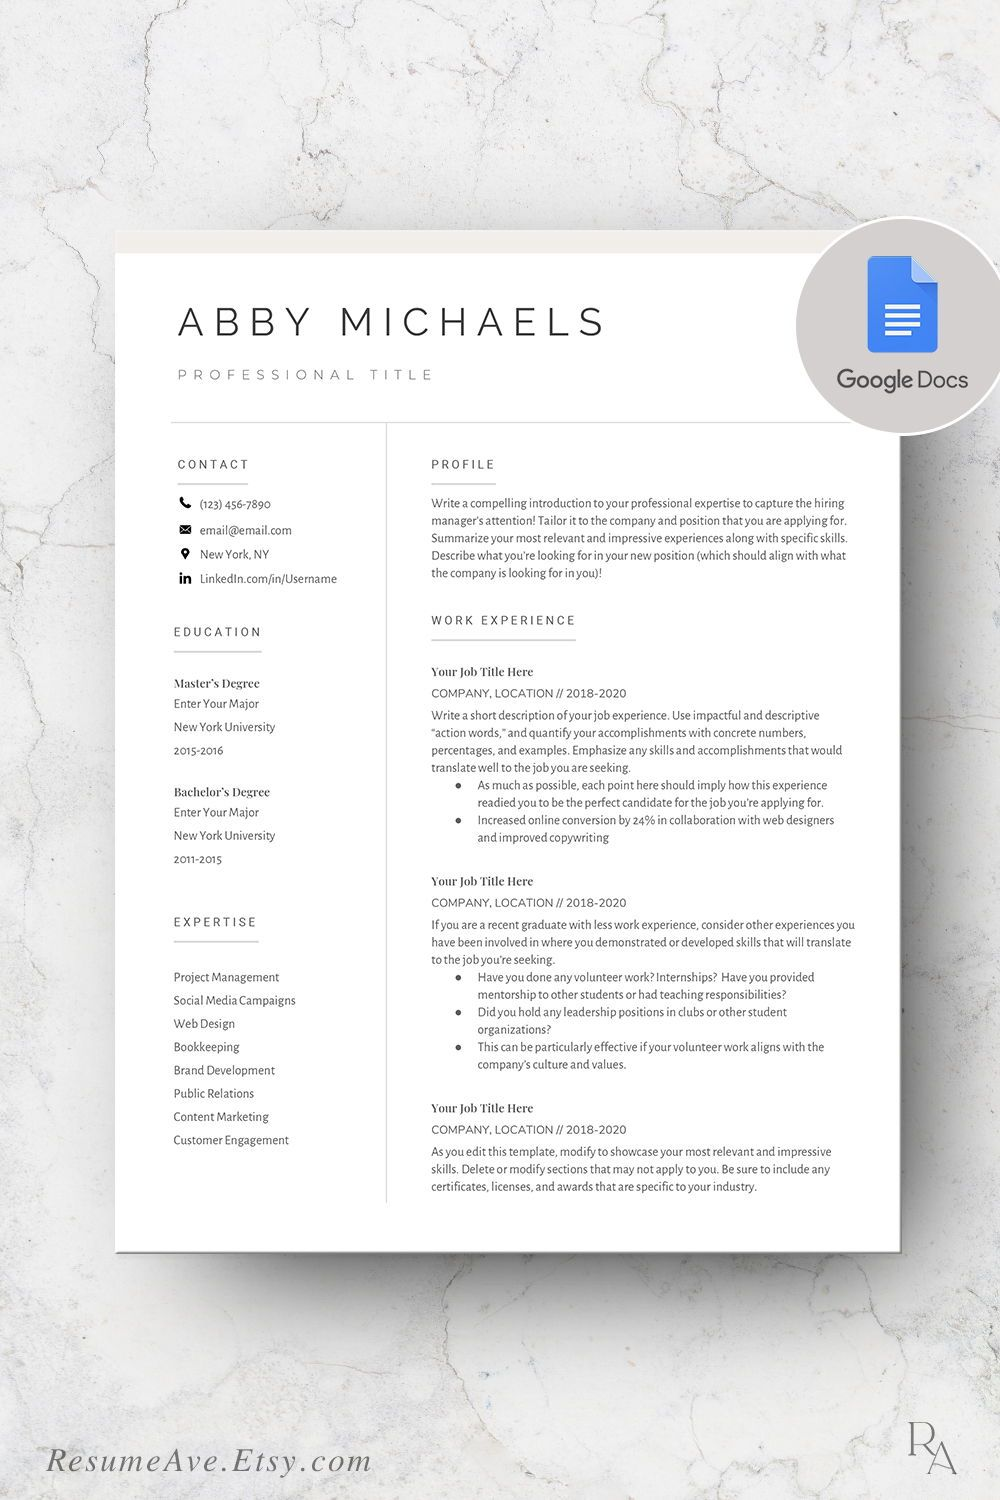 Modern google docs resume / cv template nurse resume / cv